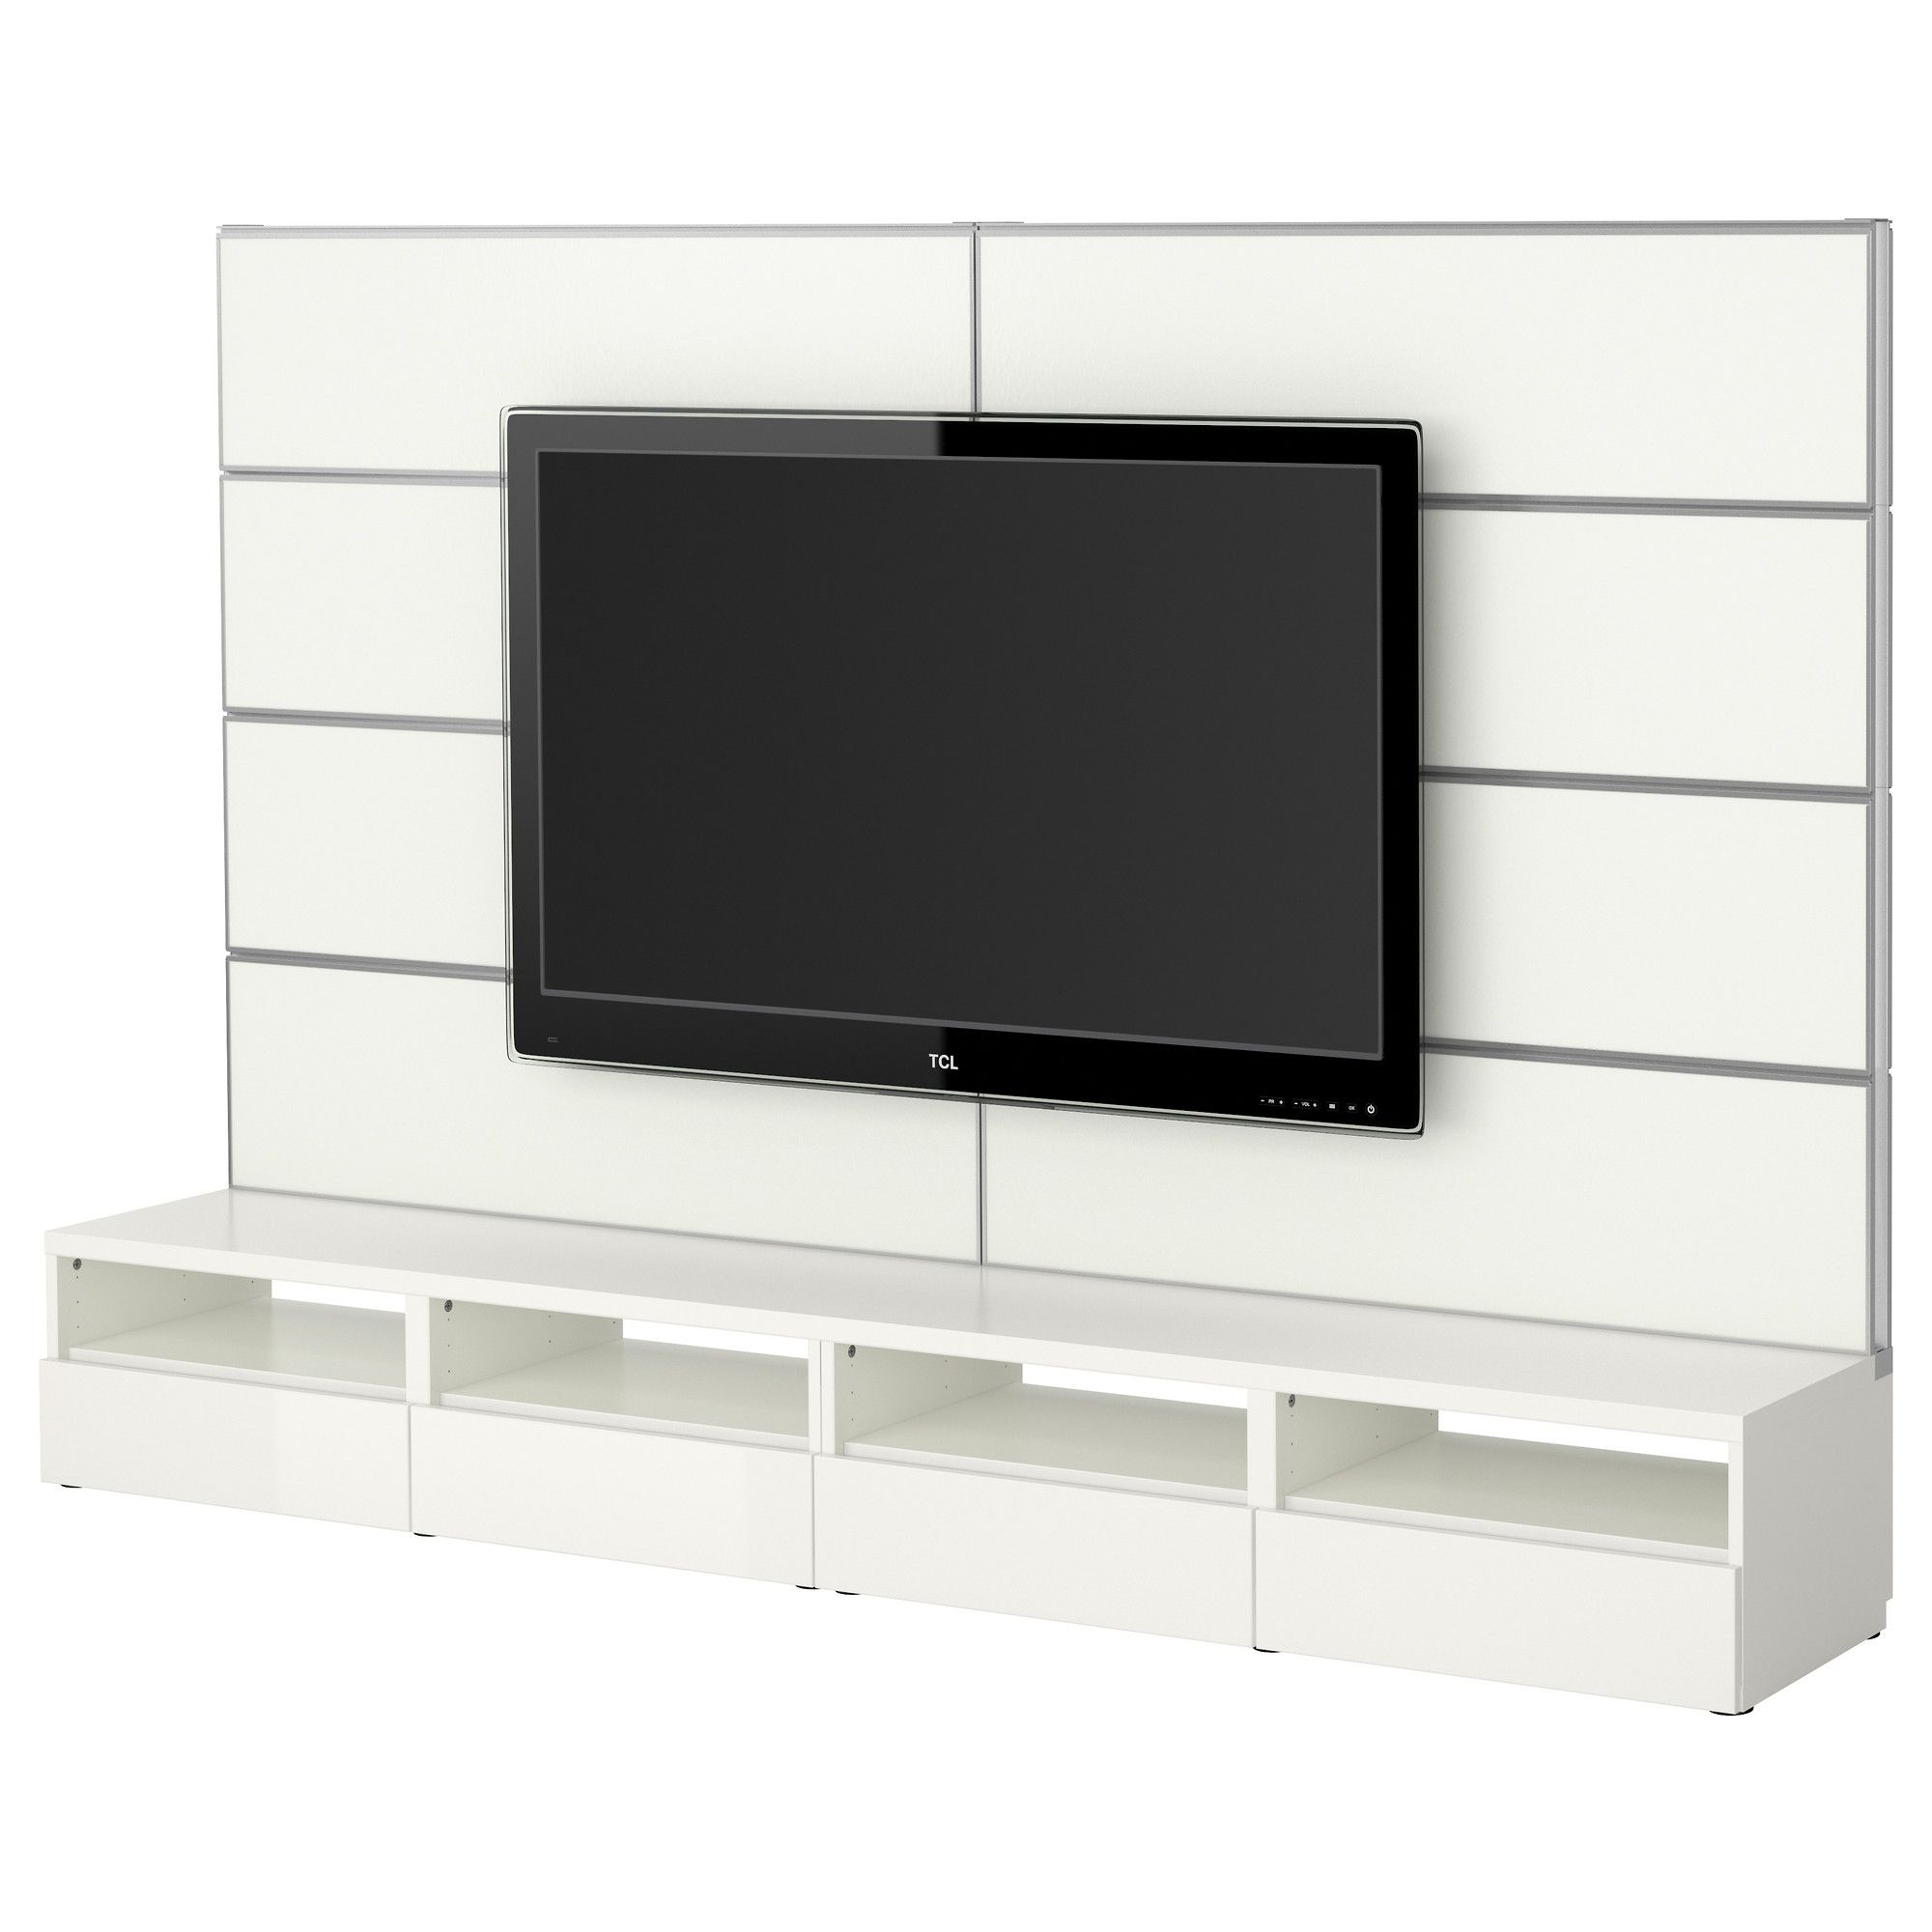 best framst tv storage combination white ikea apt pinterest tv storage and storage. Black Bedroom Furniture Sets. Home Design Ideas